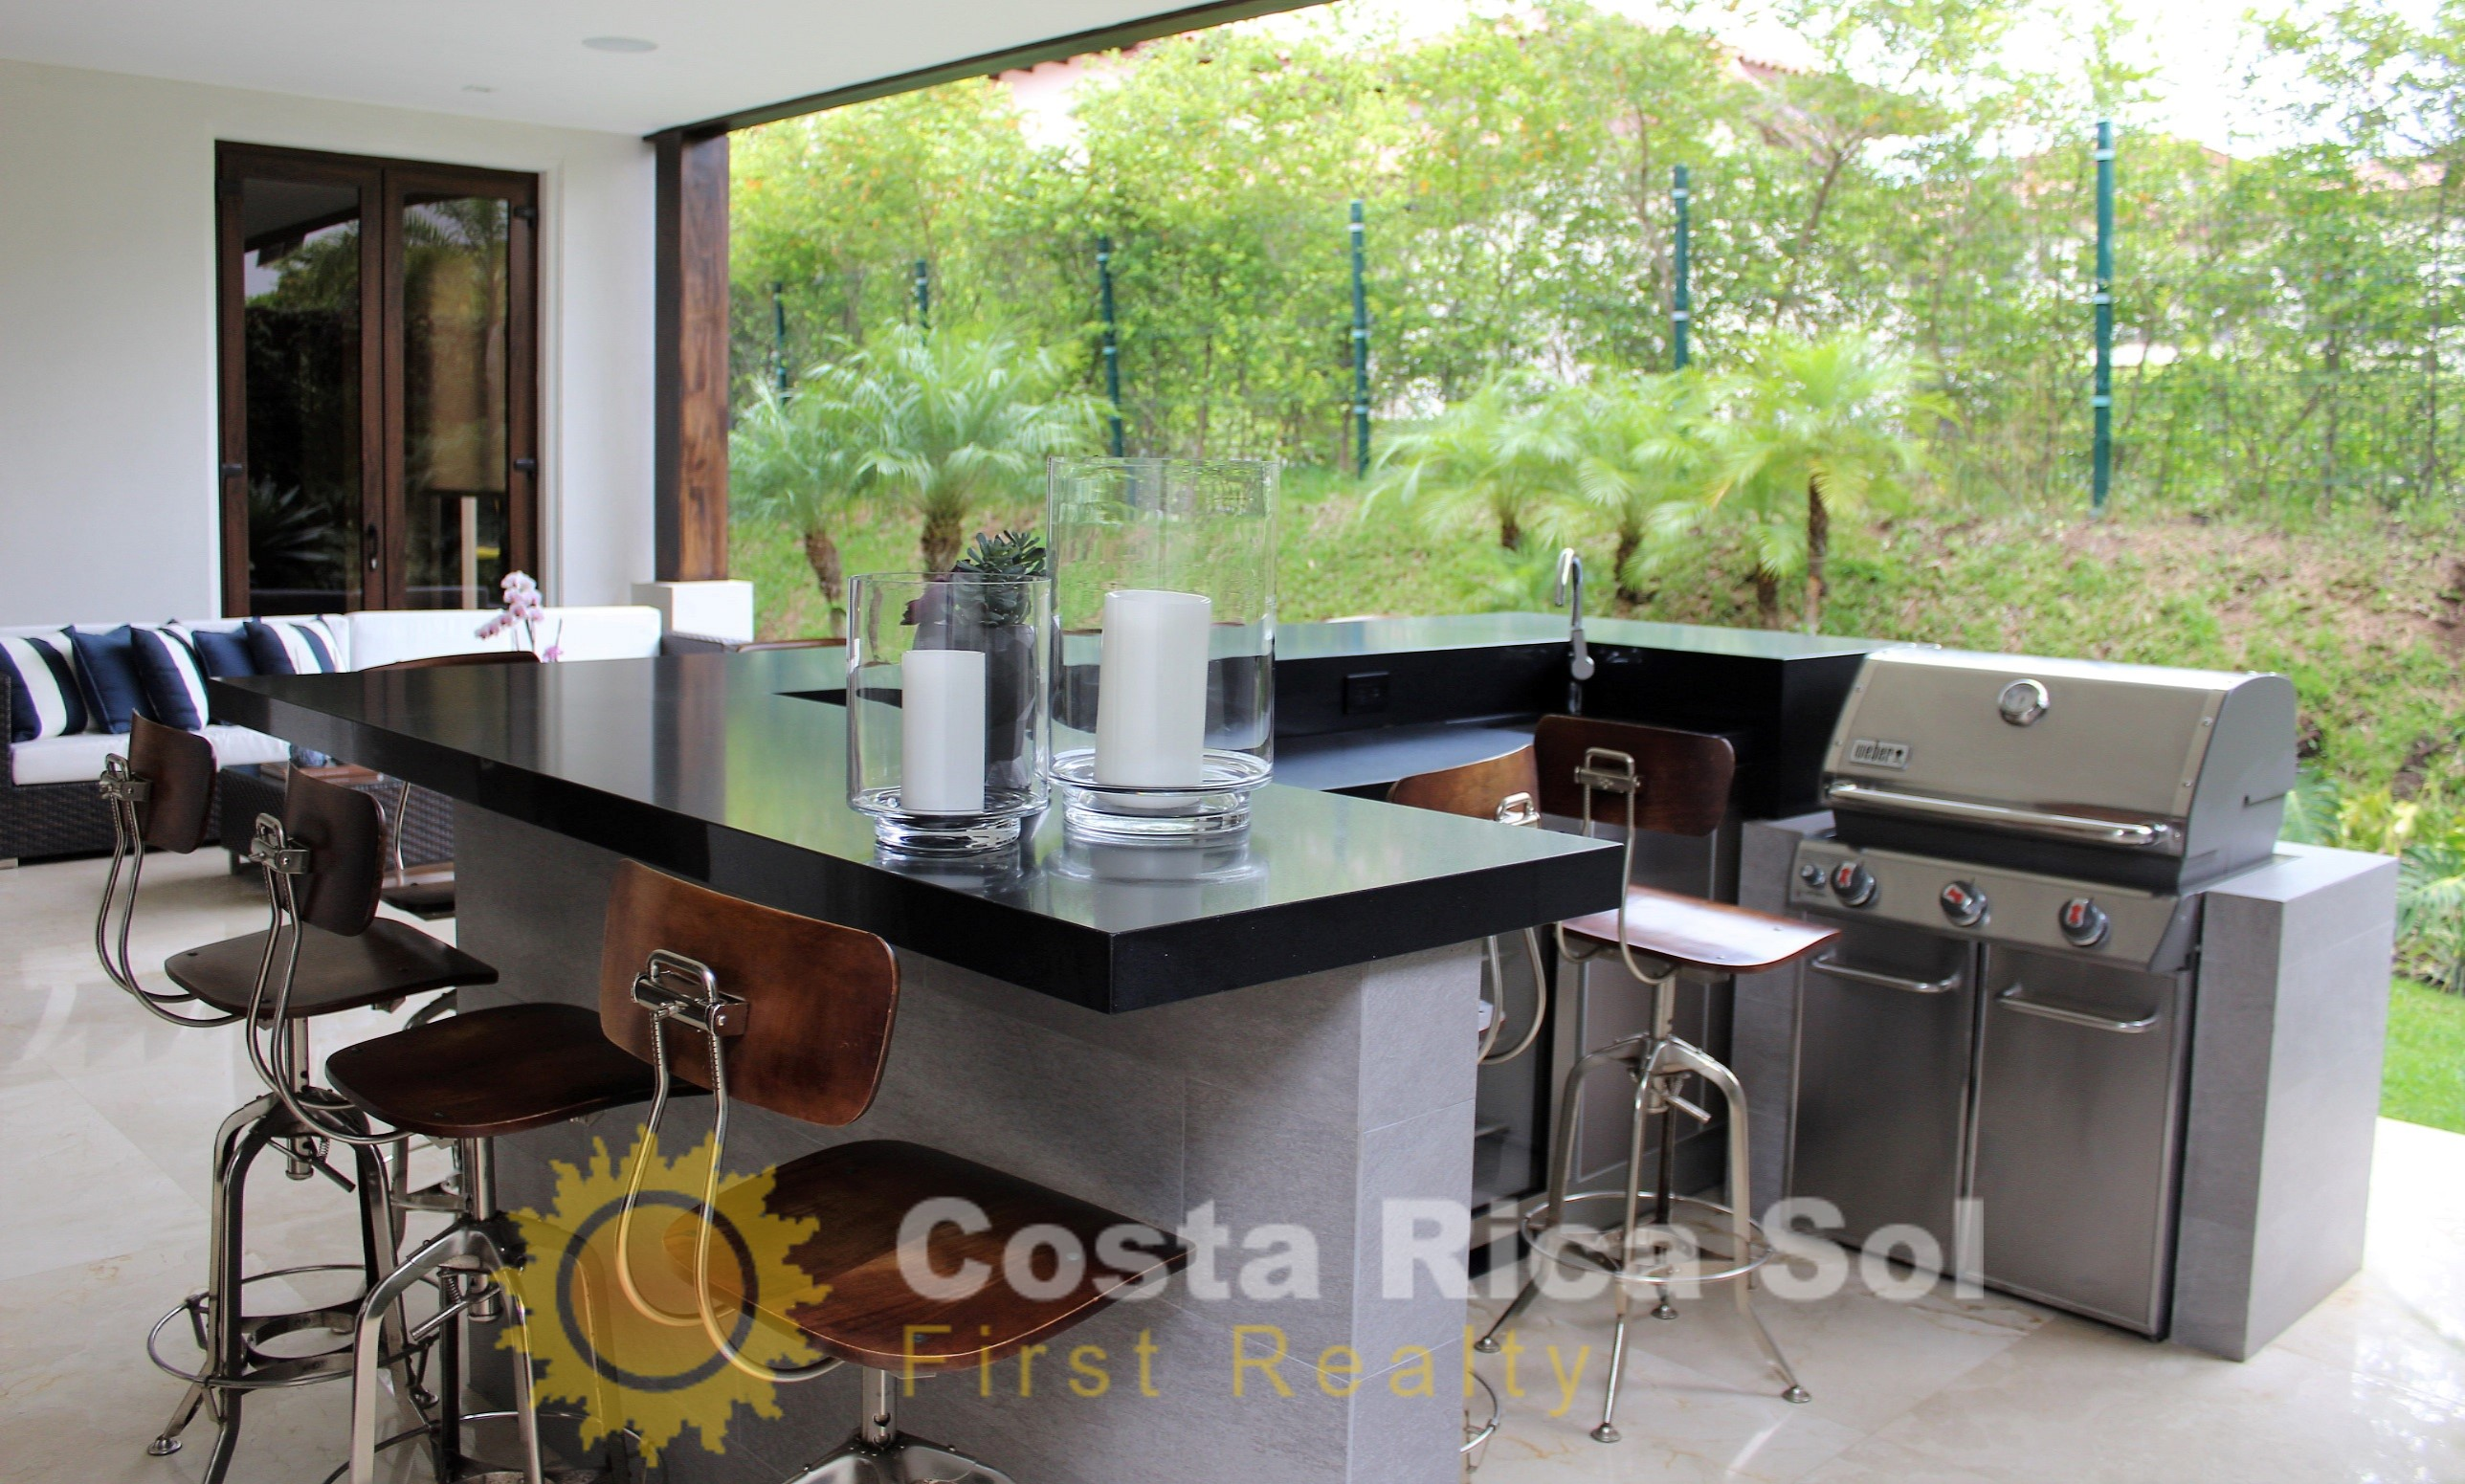 //costaricasol.com/images/jux_real_estate/realties/IMG_08461.jpg